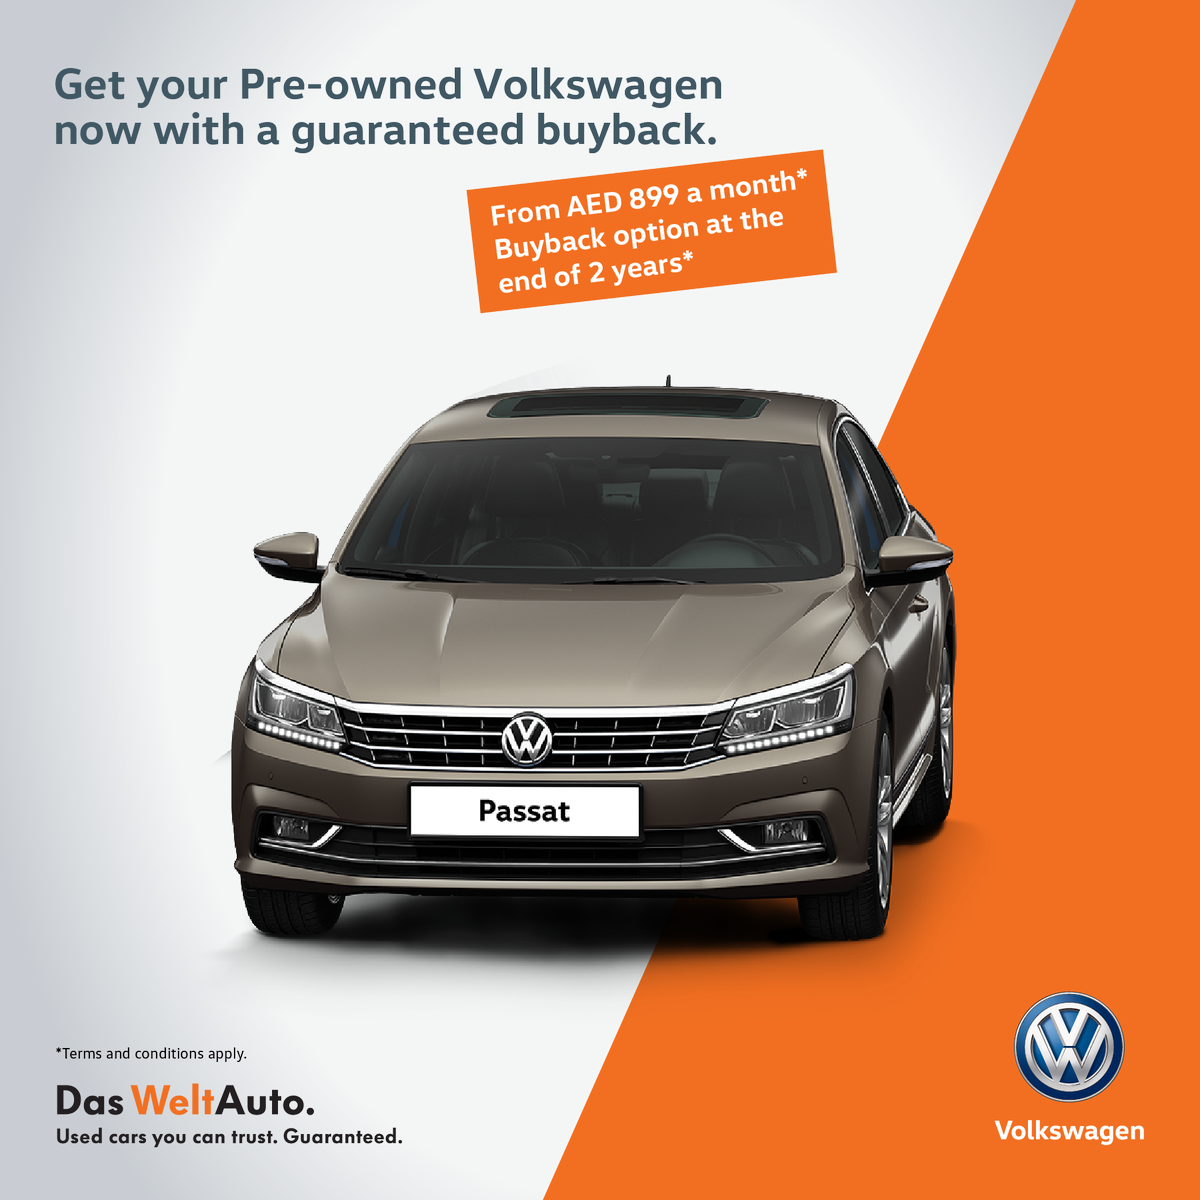 VOLKSWAGEN UAE | Sale & Offers | Locations | Store Info